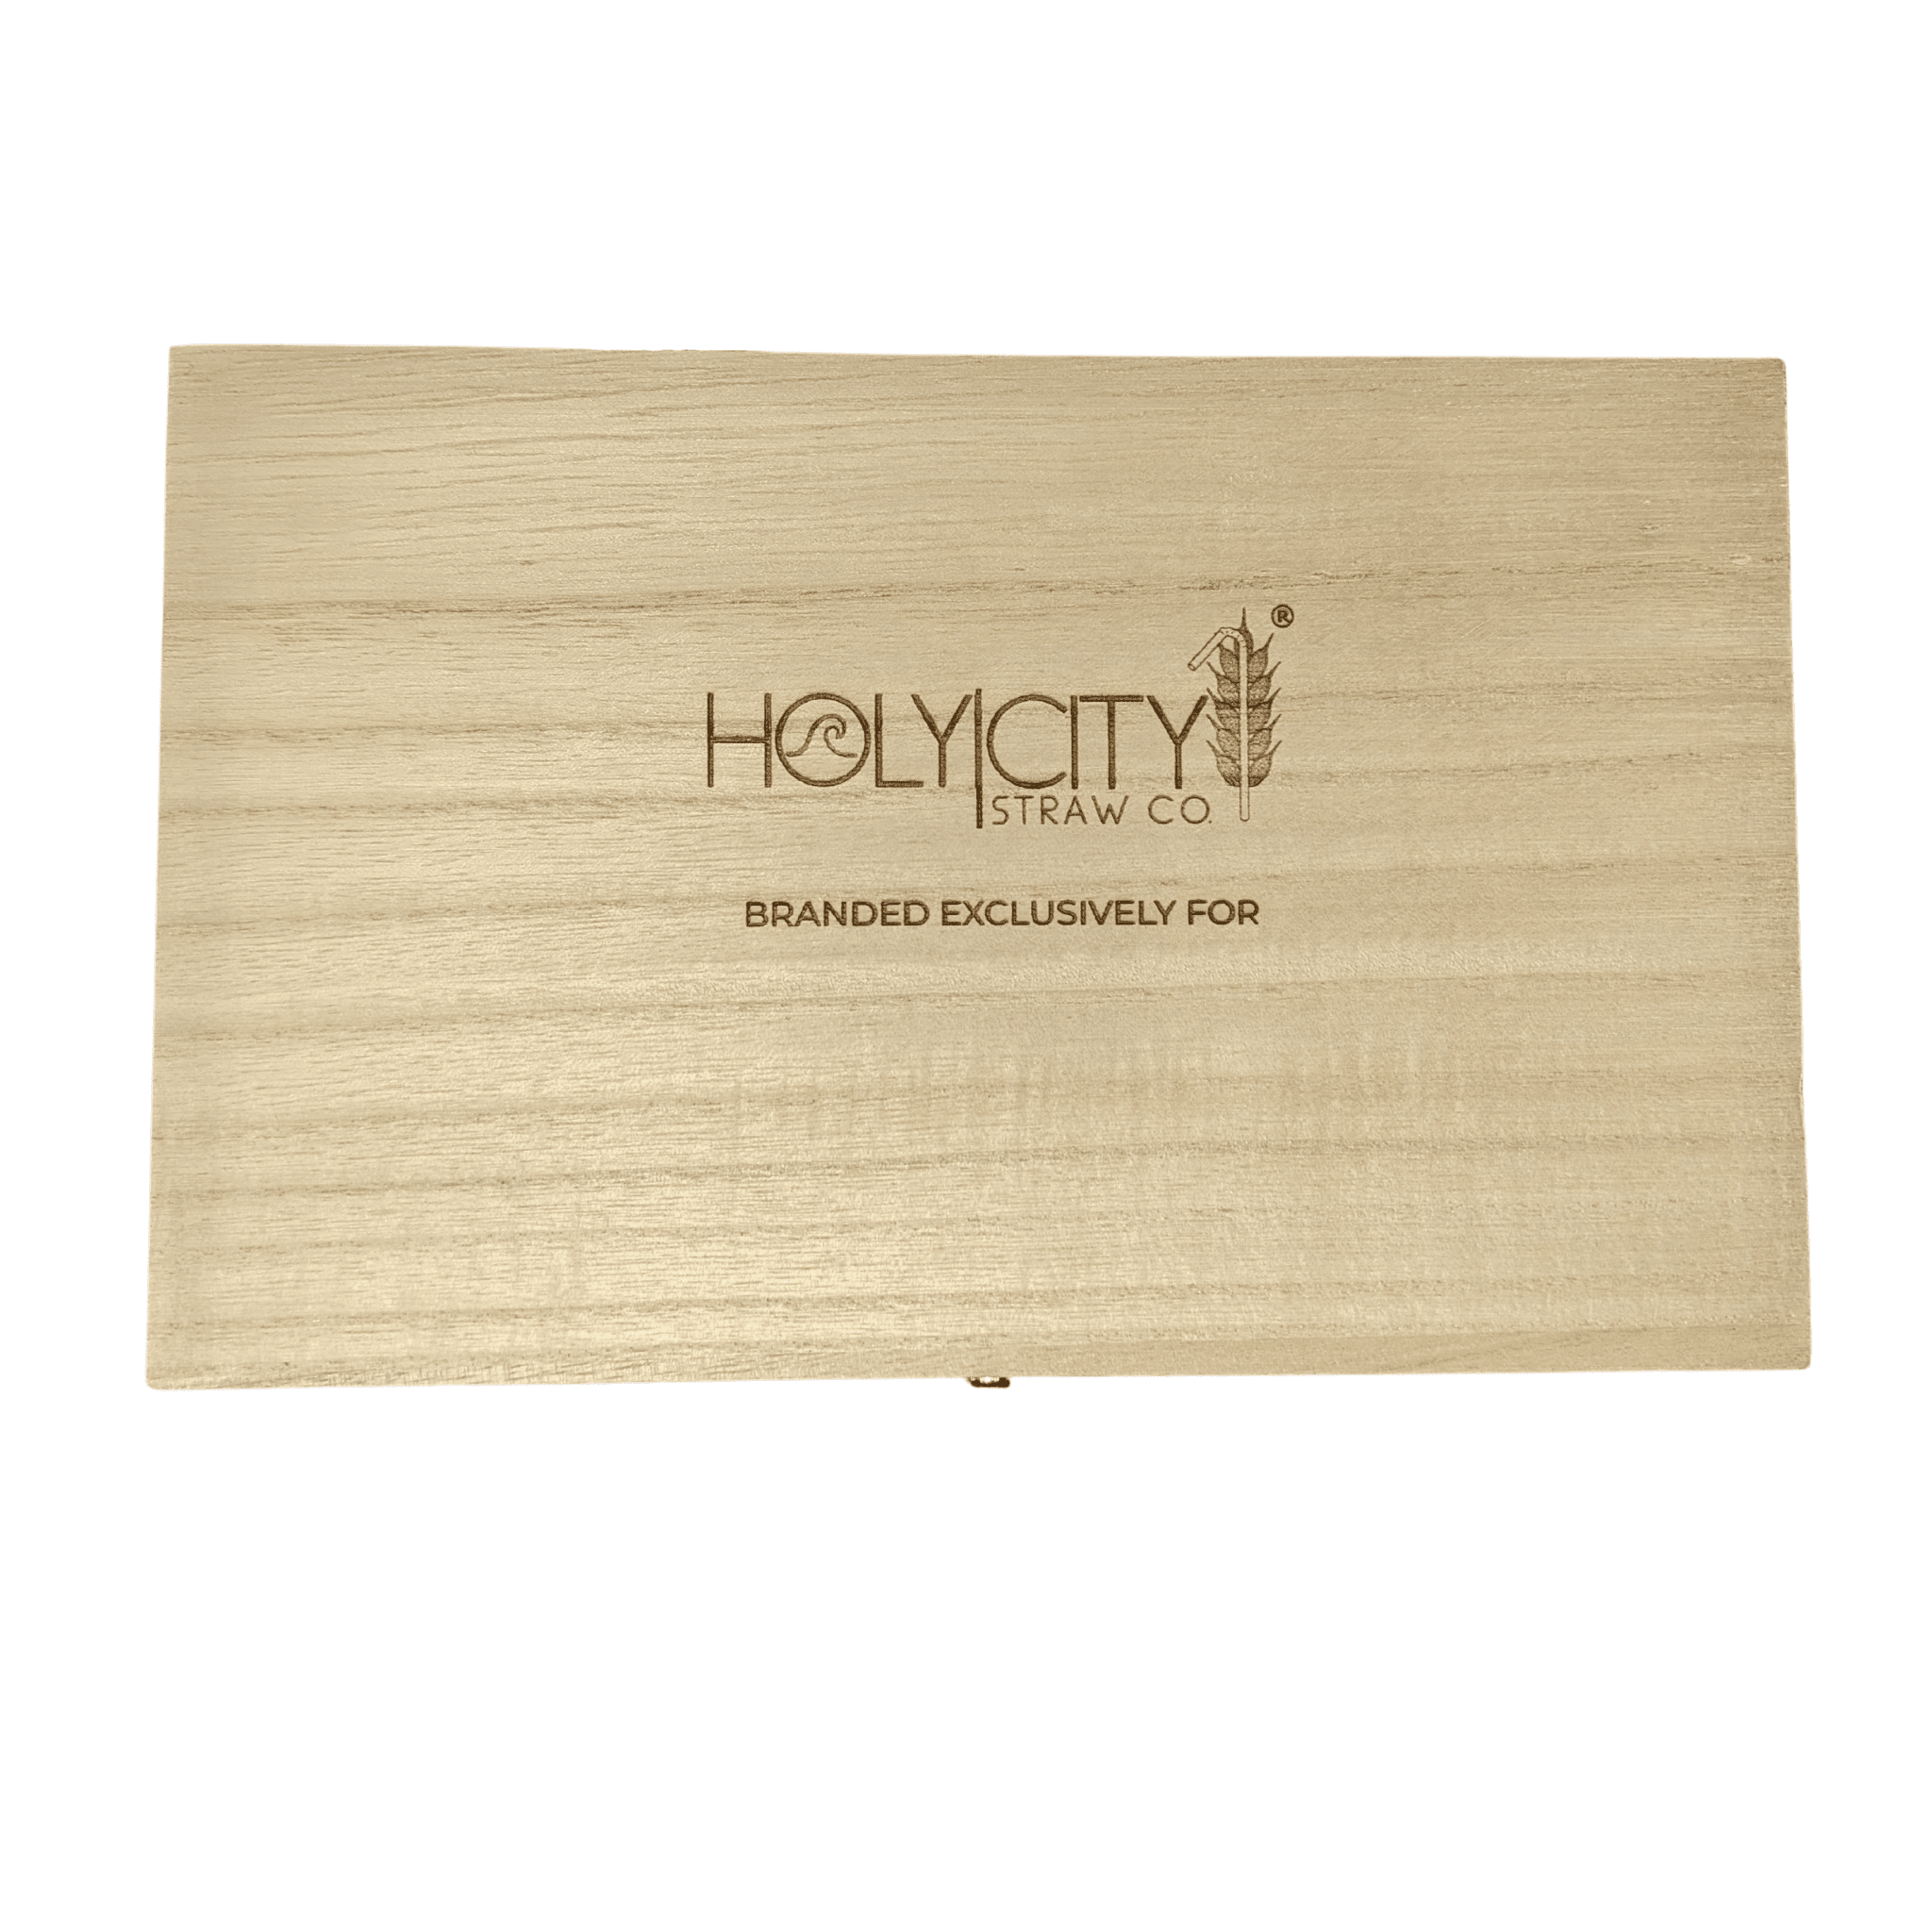 Custom Branded Straw Holder Box Unbranded Top